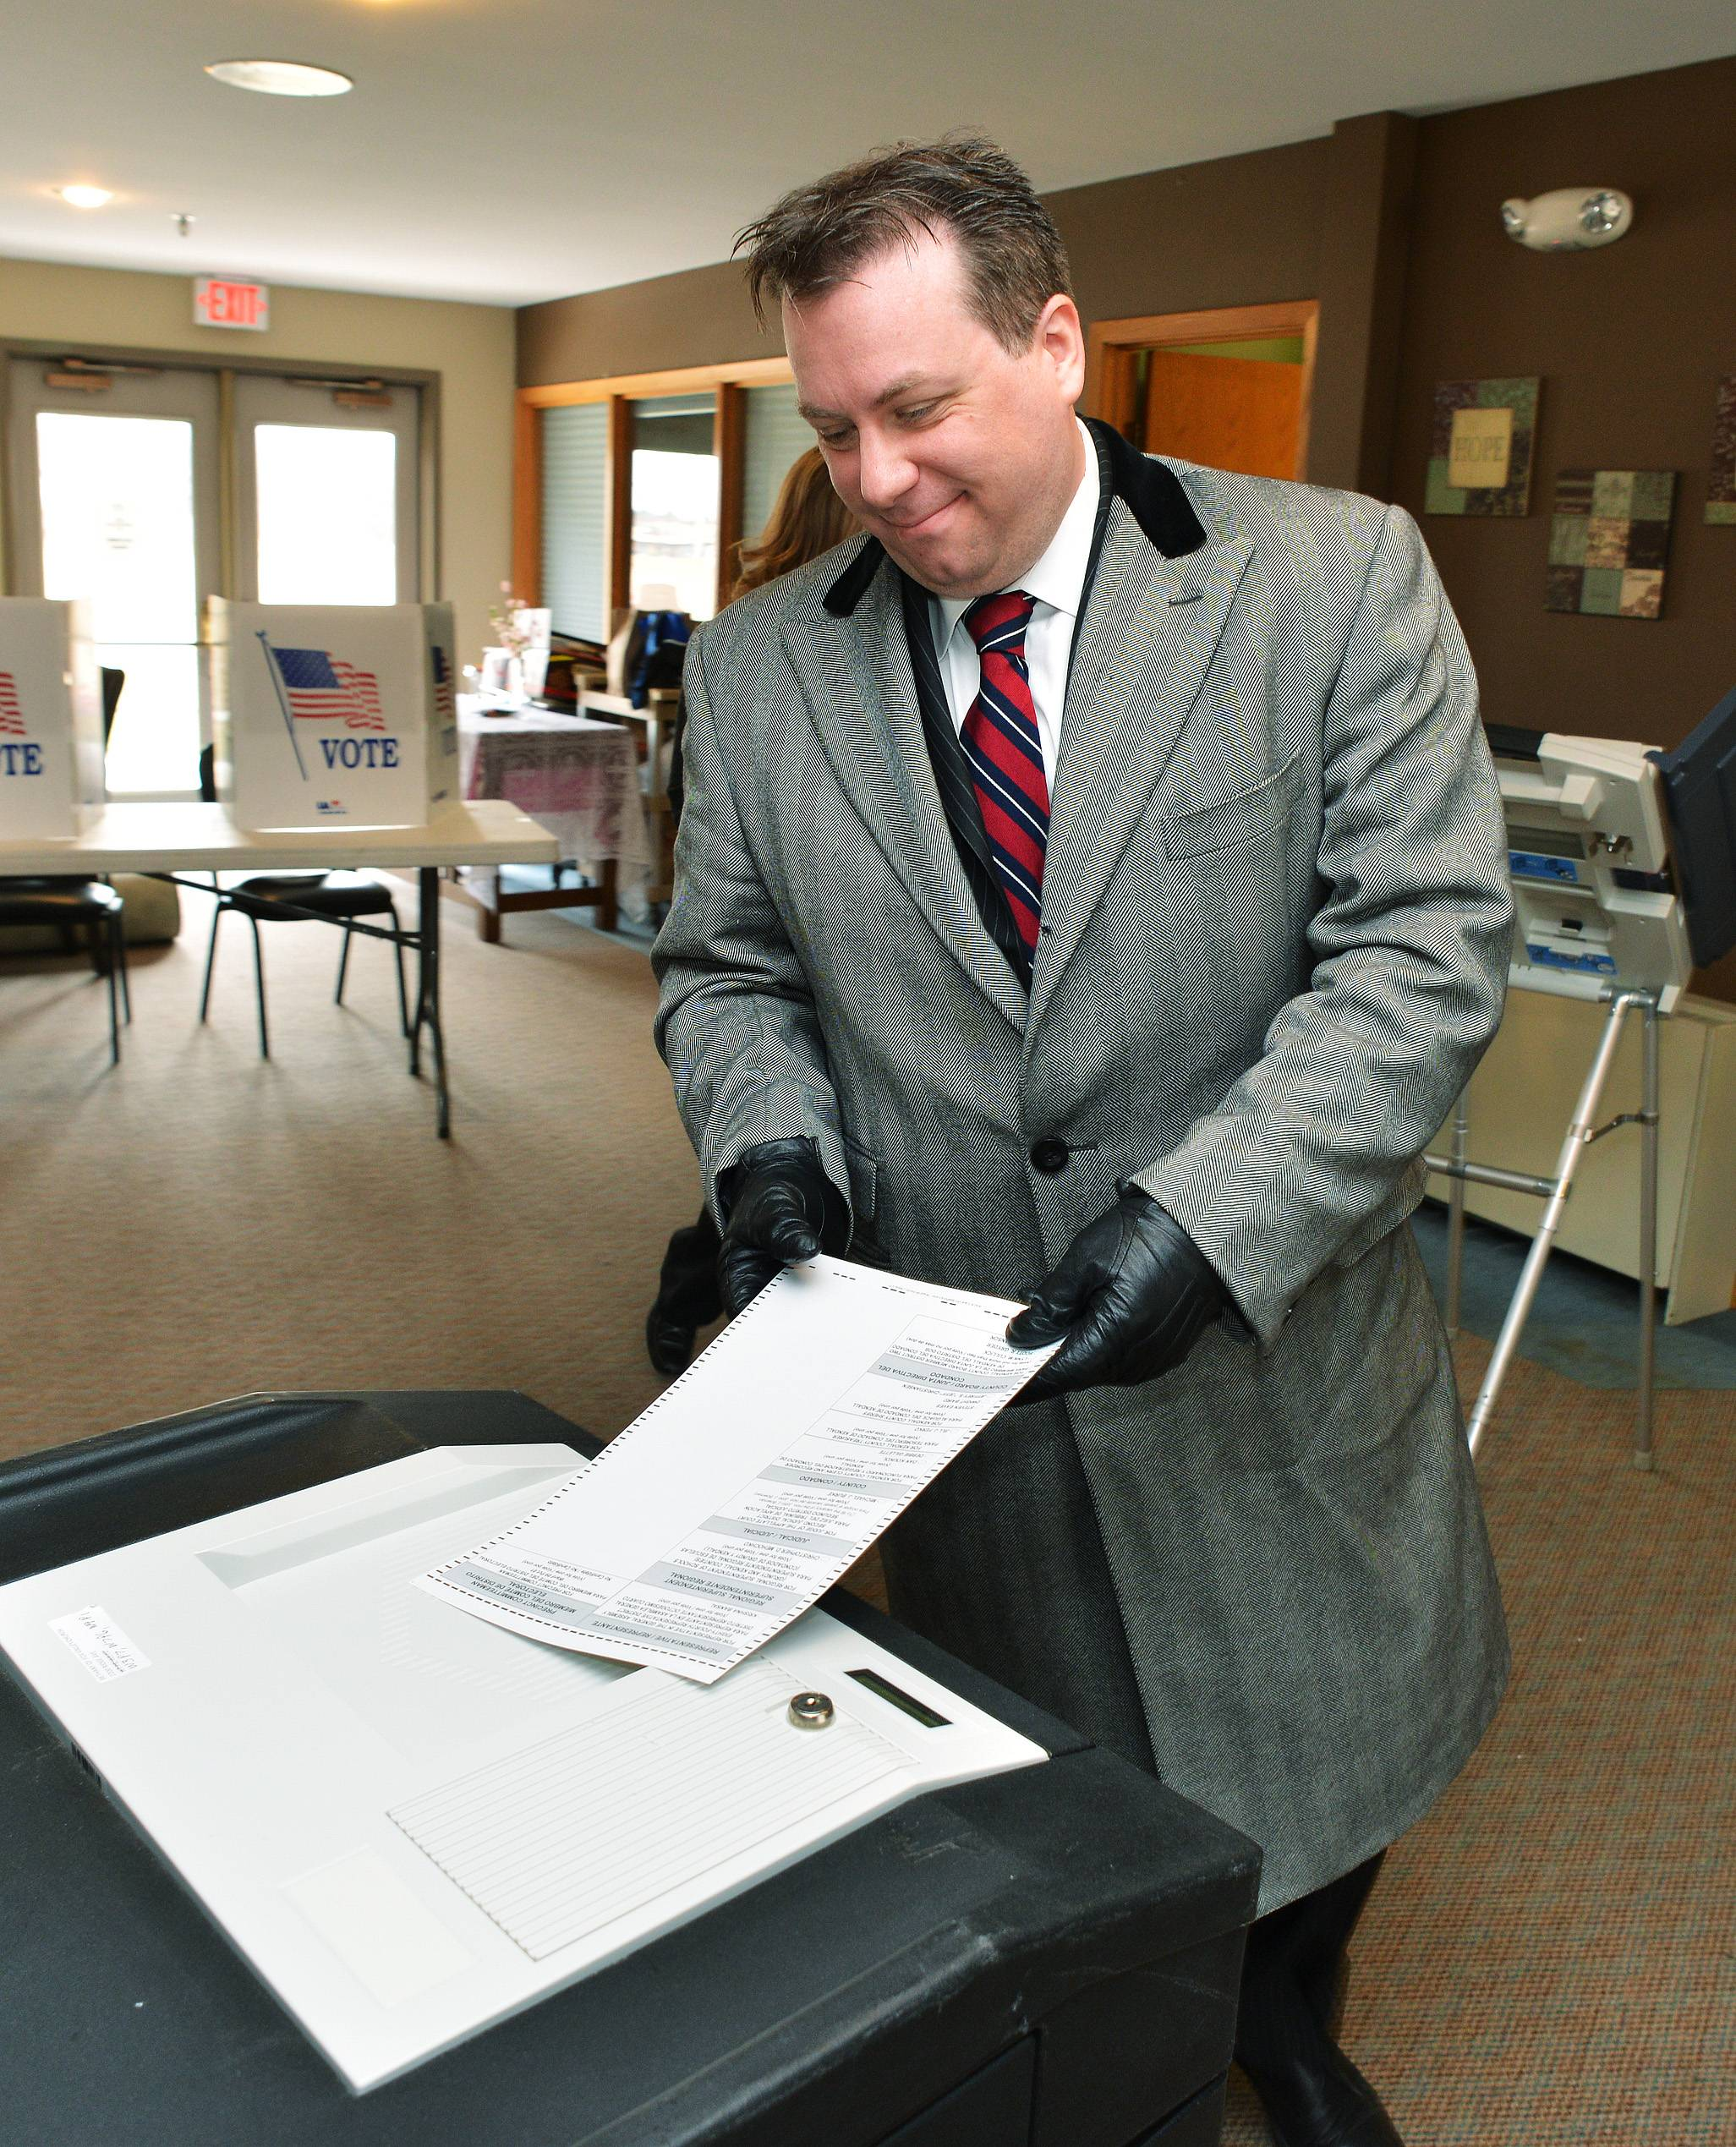 11th Congressional Candidate Ian Bayne of Aurora casts his vote Tuesday morning in Aurora.